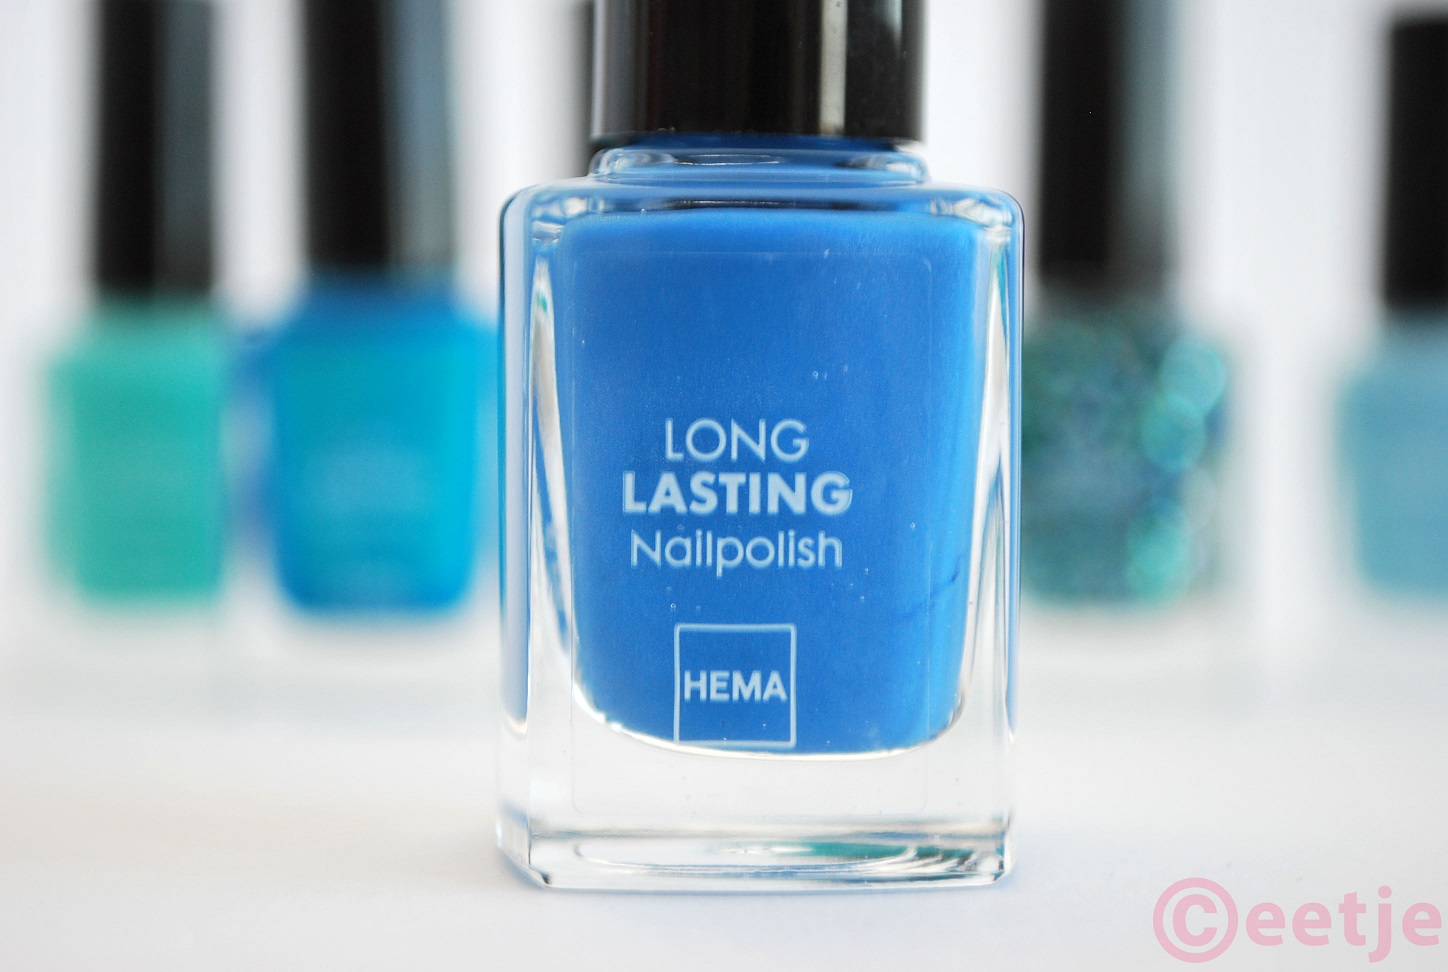 longlasting nailpolish ocean blue hema review